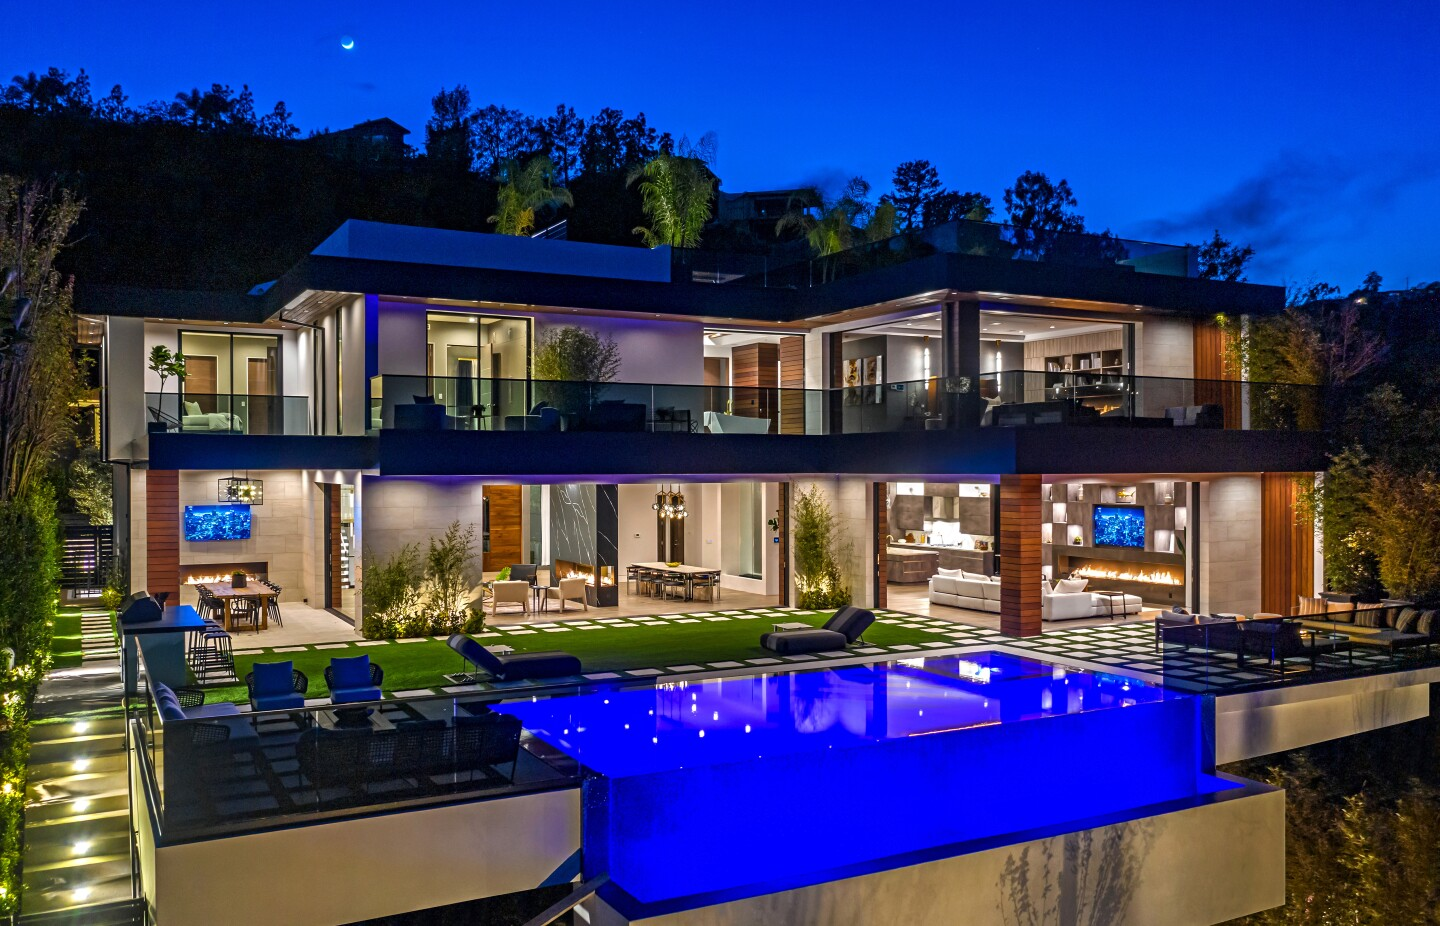 Accent lighting and modern fixtures enhance the visual allure of this newly built home in Brentwood. Listed for $12.899 million, the six-bedroom, nine-bathroom residence was built by Huntington Estate Properties and sits on about a third of an acre with an infinity-edge swimming pool. High ceilings, marble slabs and a floating glass-and-steel staircase are among features of the 9,300-square-foot showplace. An illuminated waterfall feature and a two-way fireplace bookend the dining room. Other amenities include a movie theater, a wine room and a gym. Atop the house, a rooftop deck takes in tree-top and canyon views.